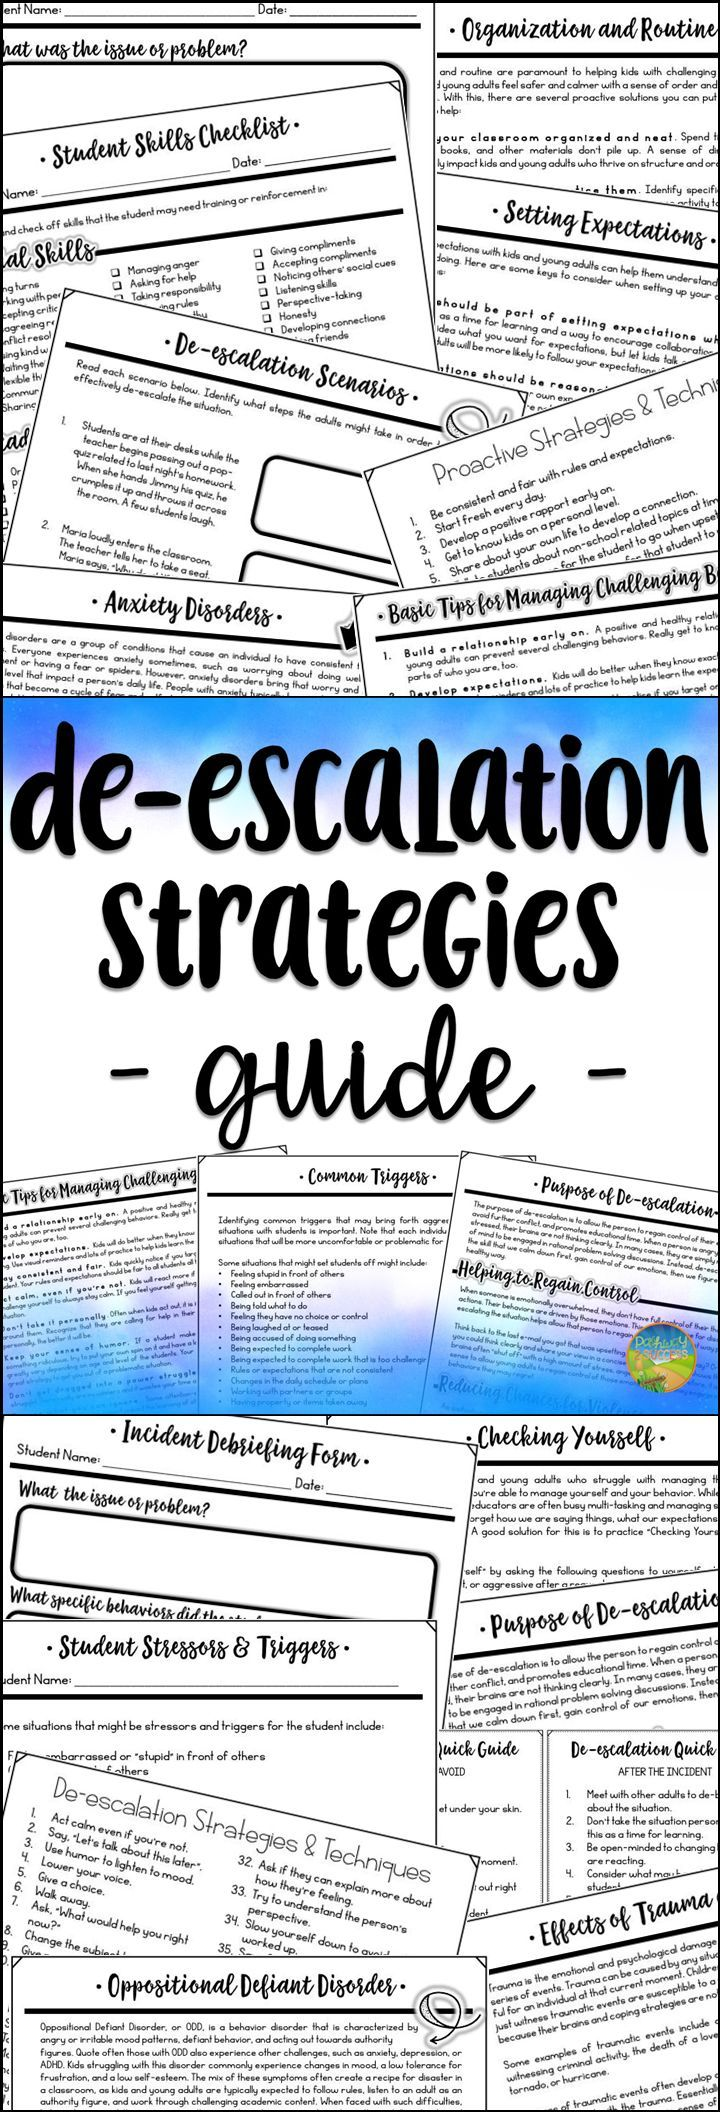 Deescalation Strategies Guide Oppositional defiant